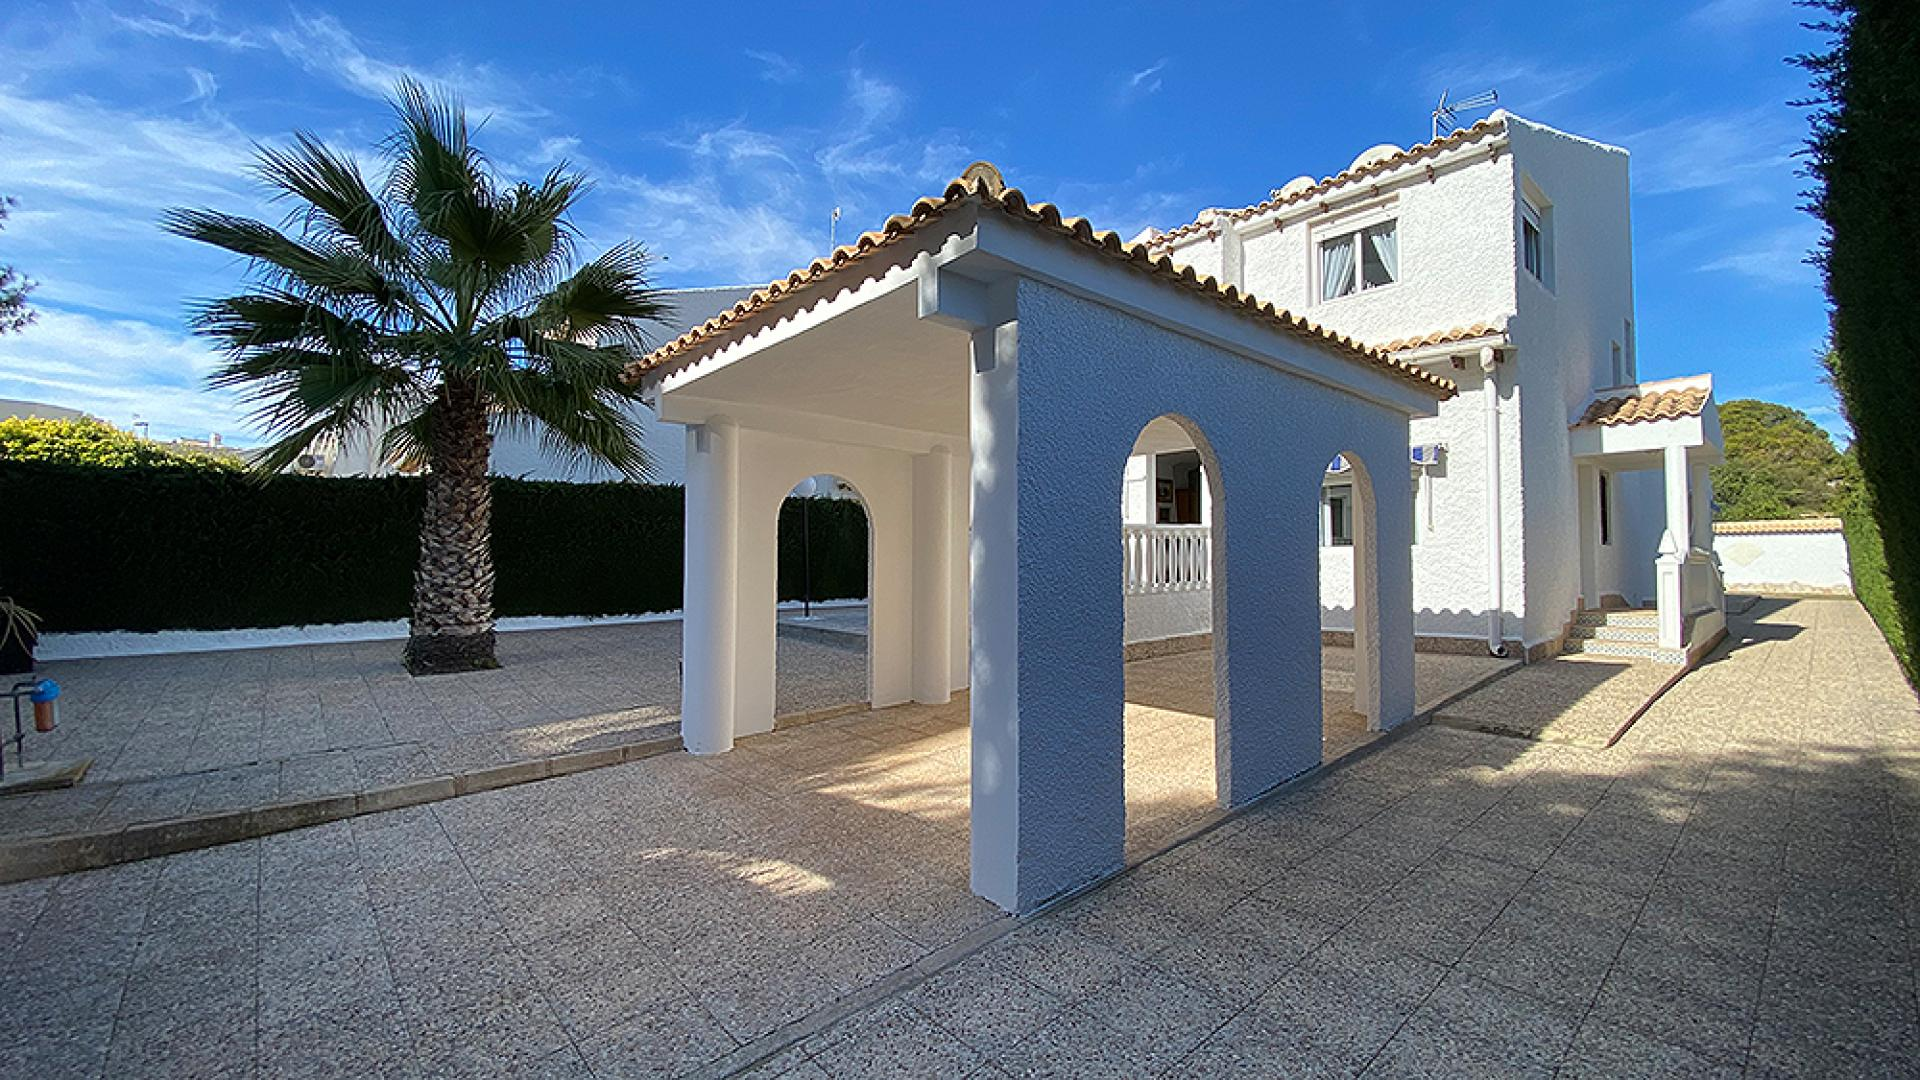 Villa in La Zenia (Alicante)